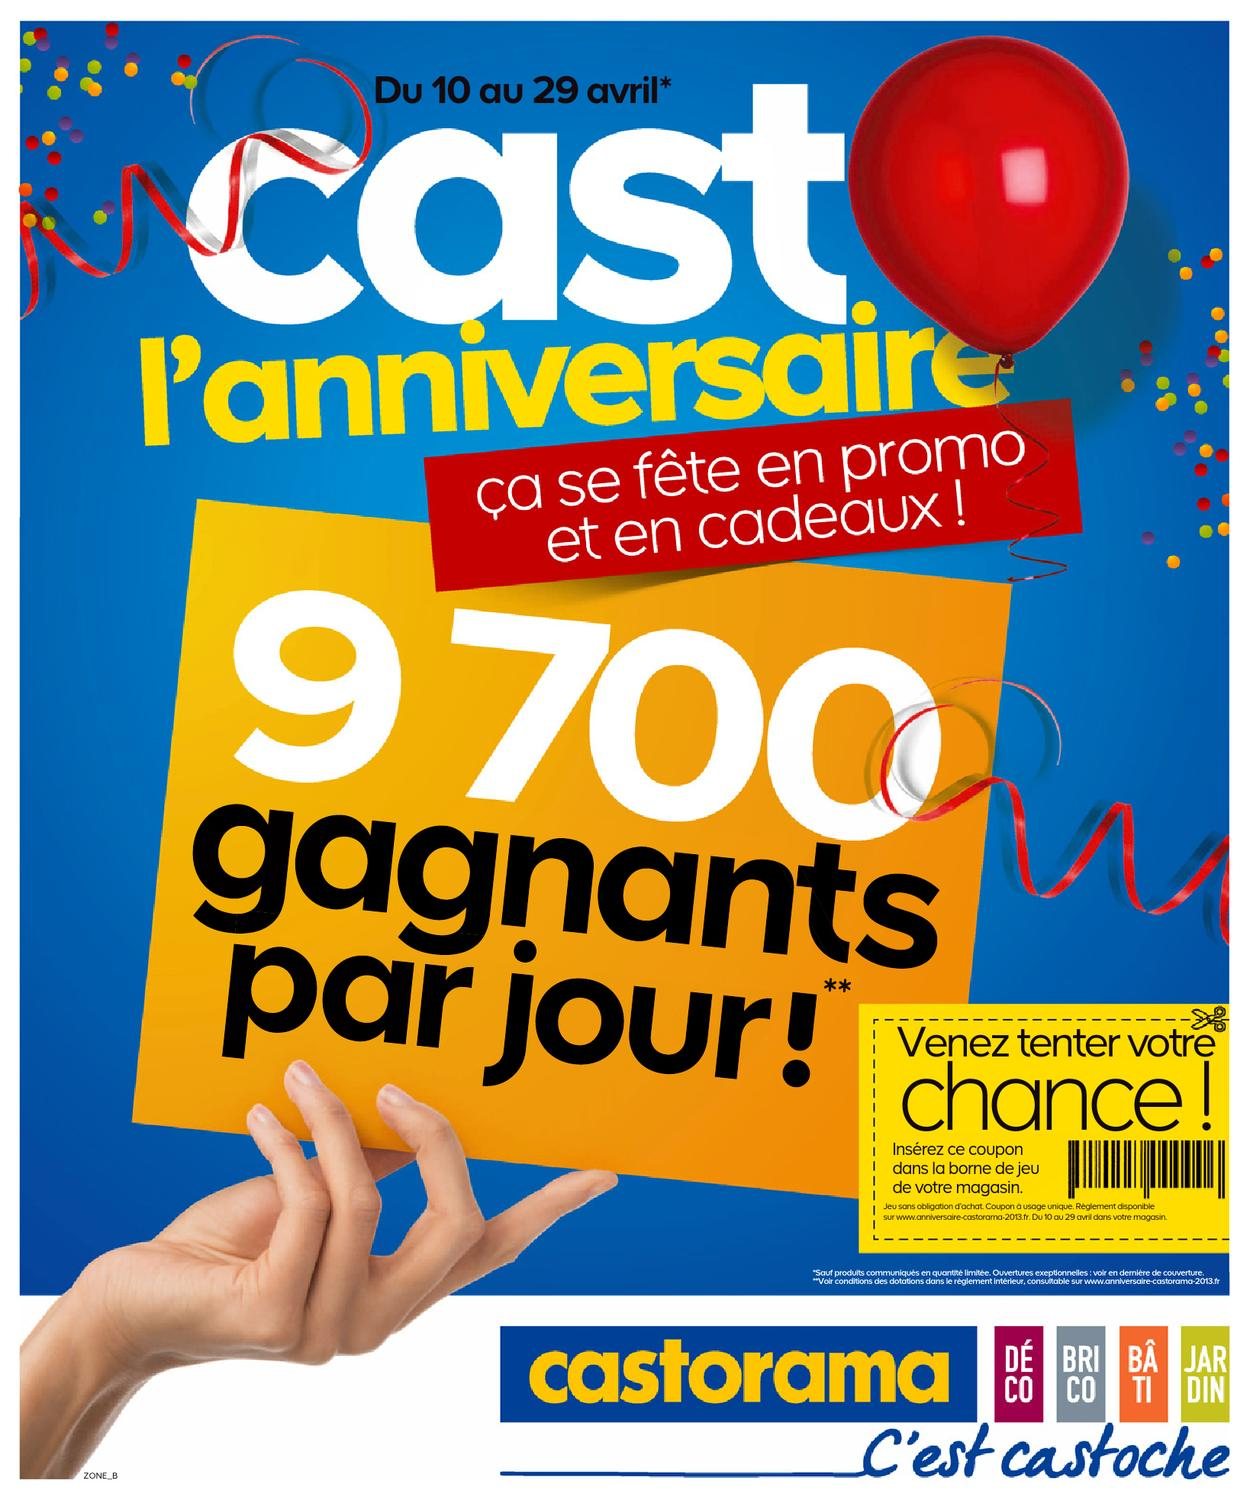 Castorama Poitiers Castorama Catalogue 10 29 Avril 2013 By Promocatalogues Issuu